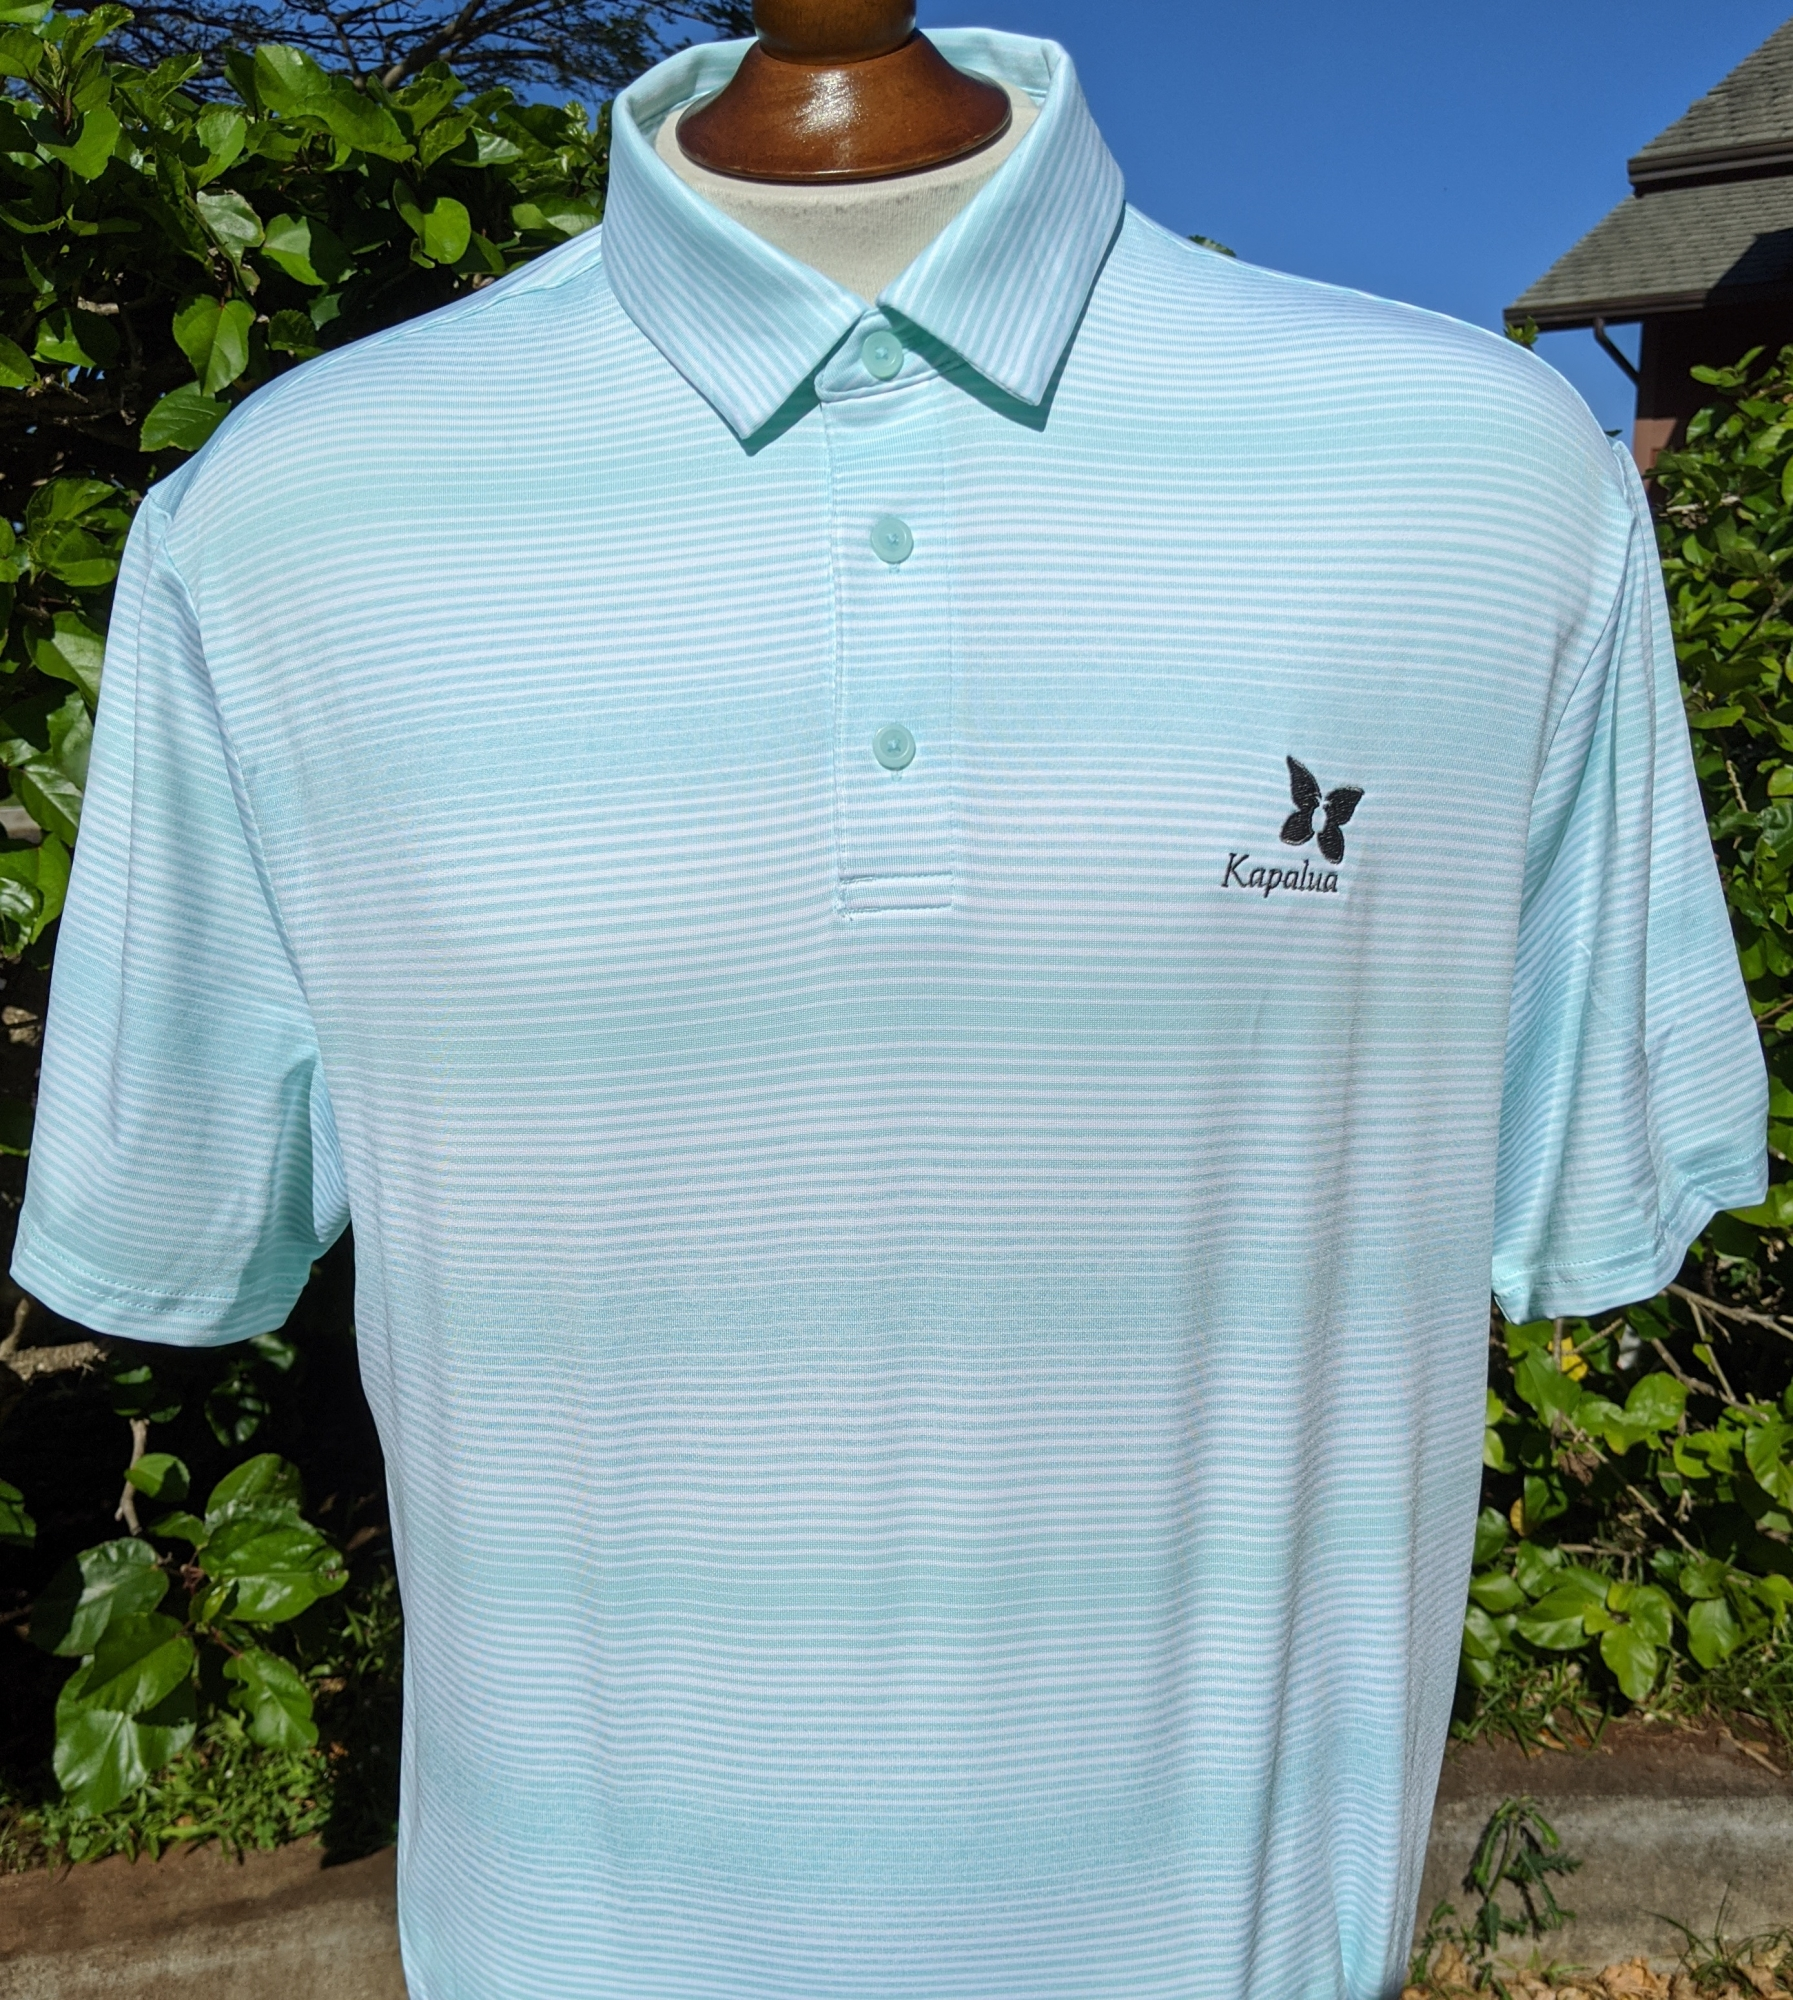 Under Armour Men's Polo Shirt - Mint with White Stripes NO LARGE OR XL AVAILABLE